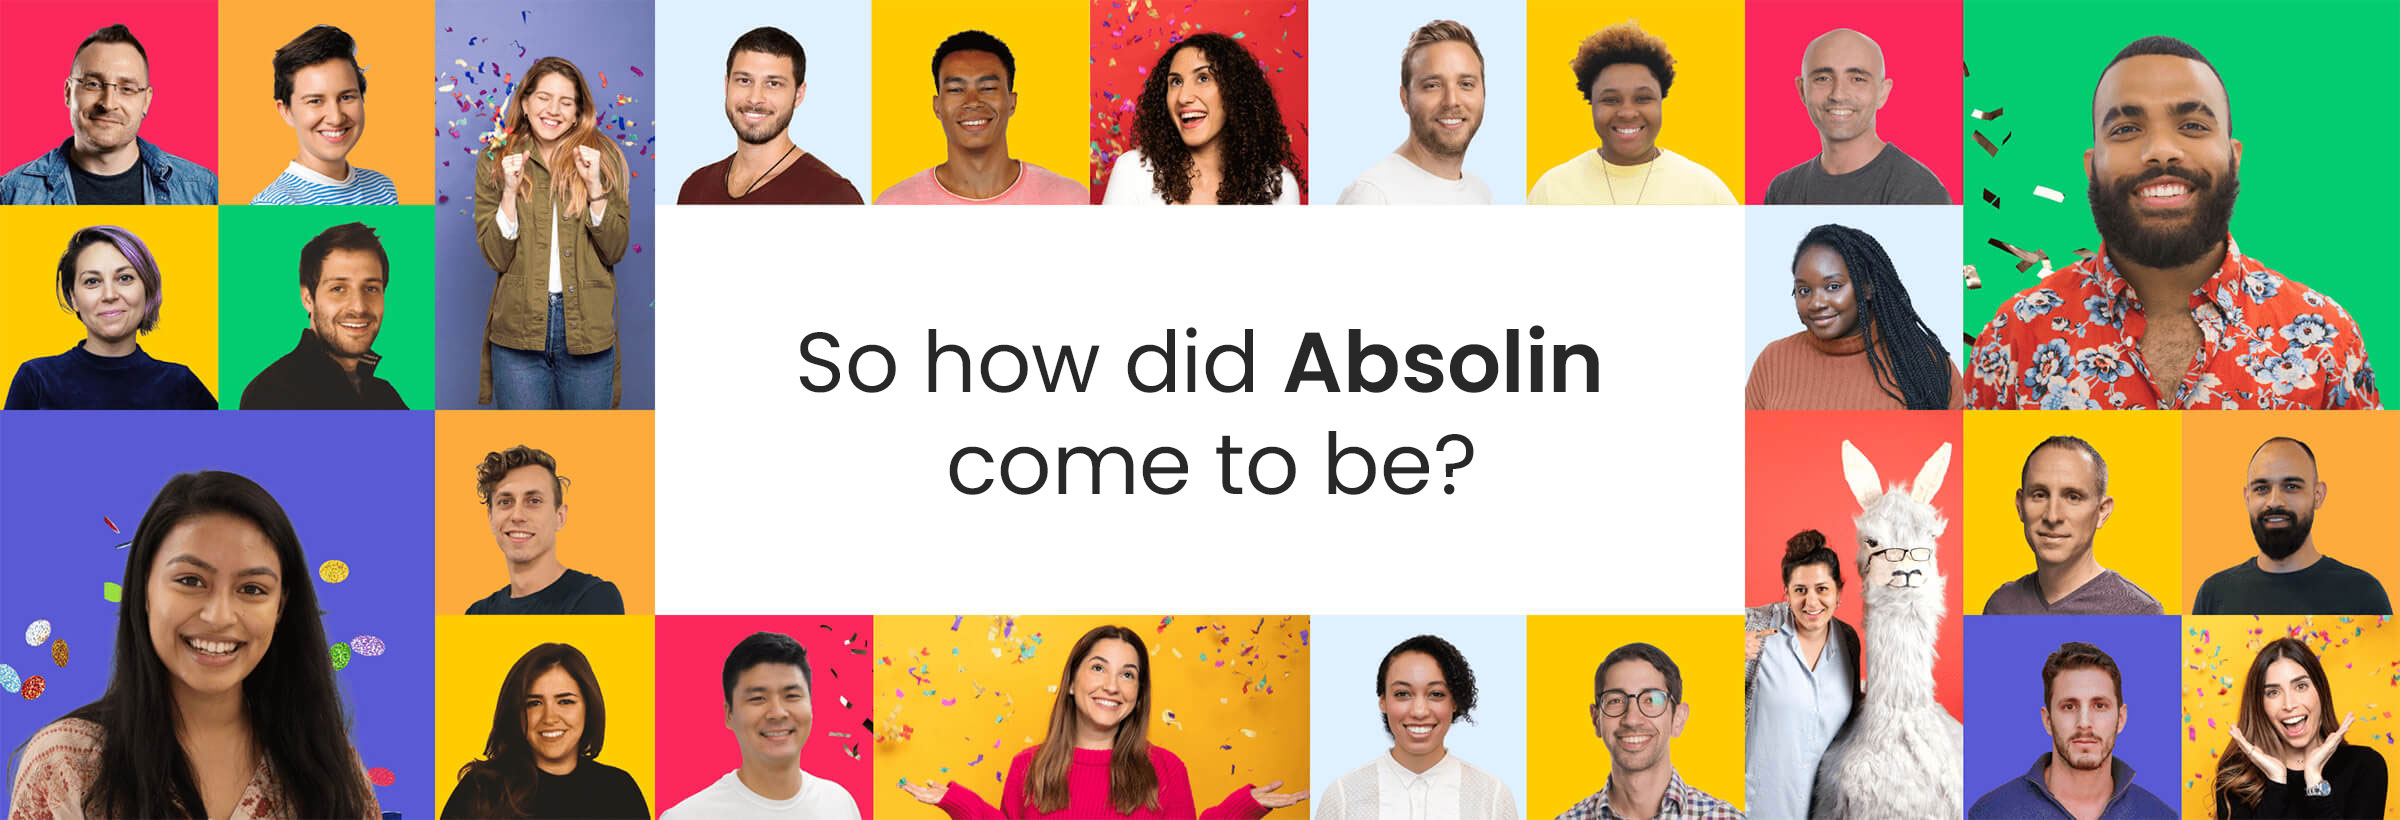 discover-absolin